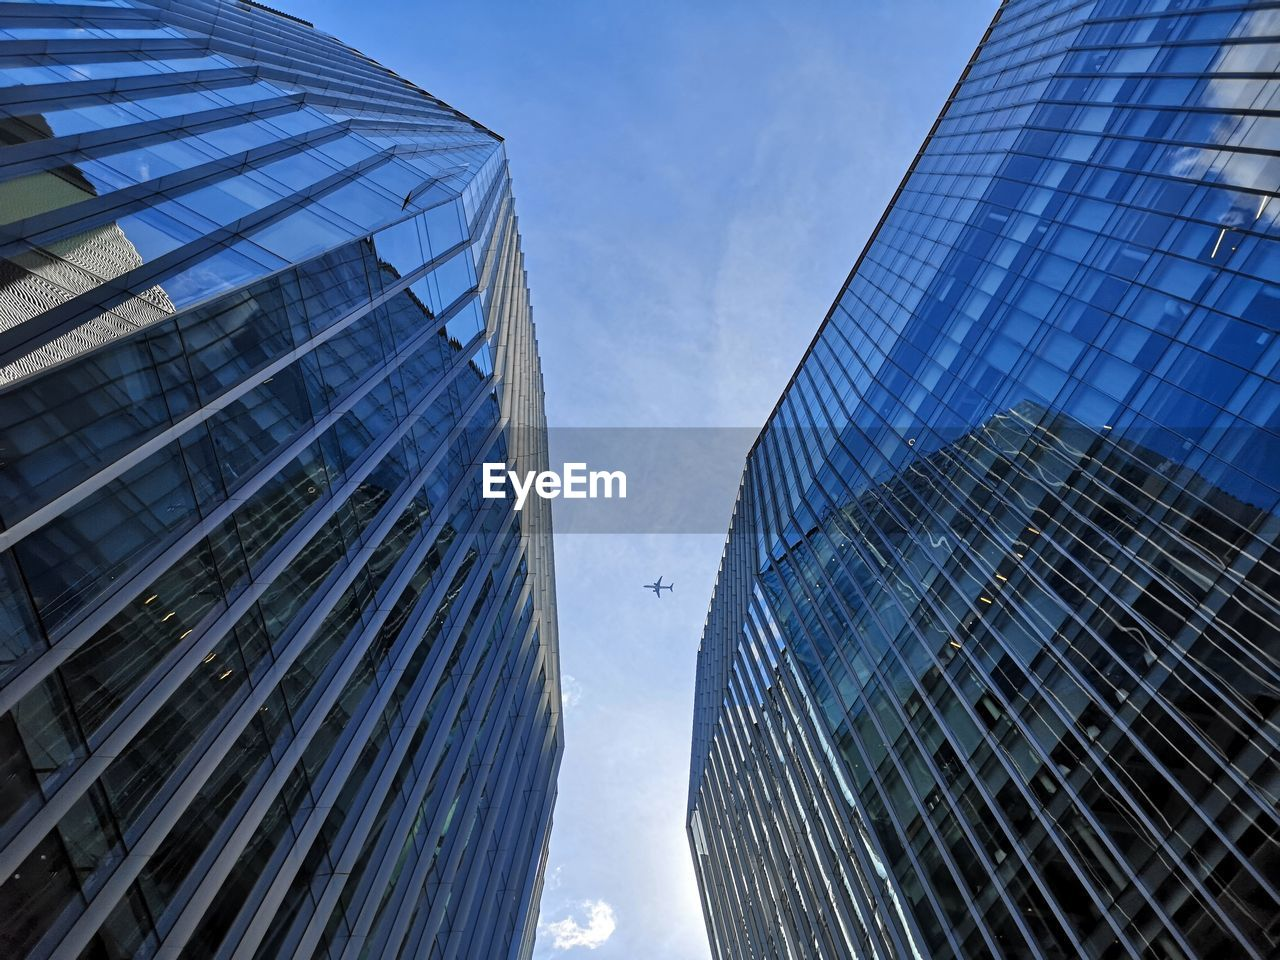 building exterior, built structure, architecture, city, modern, building, office building exterior, glass - material, low angle view, office, tall - high, sky, reflection, skyscraper, no people, nature, day, tower, business, outdoors, glass, financial district, directly below